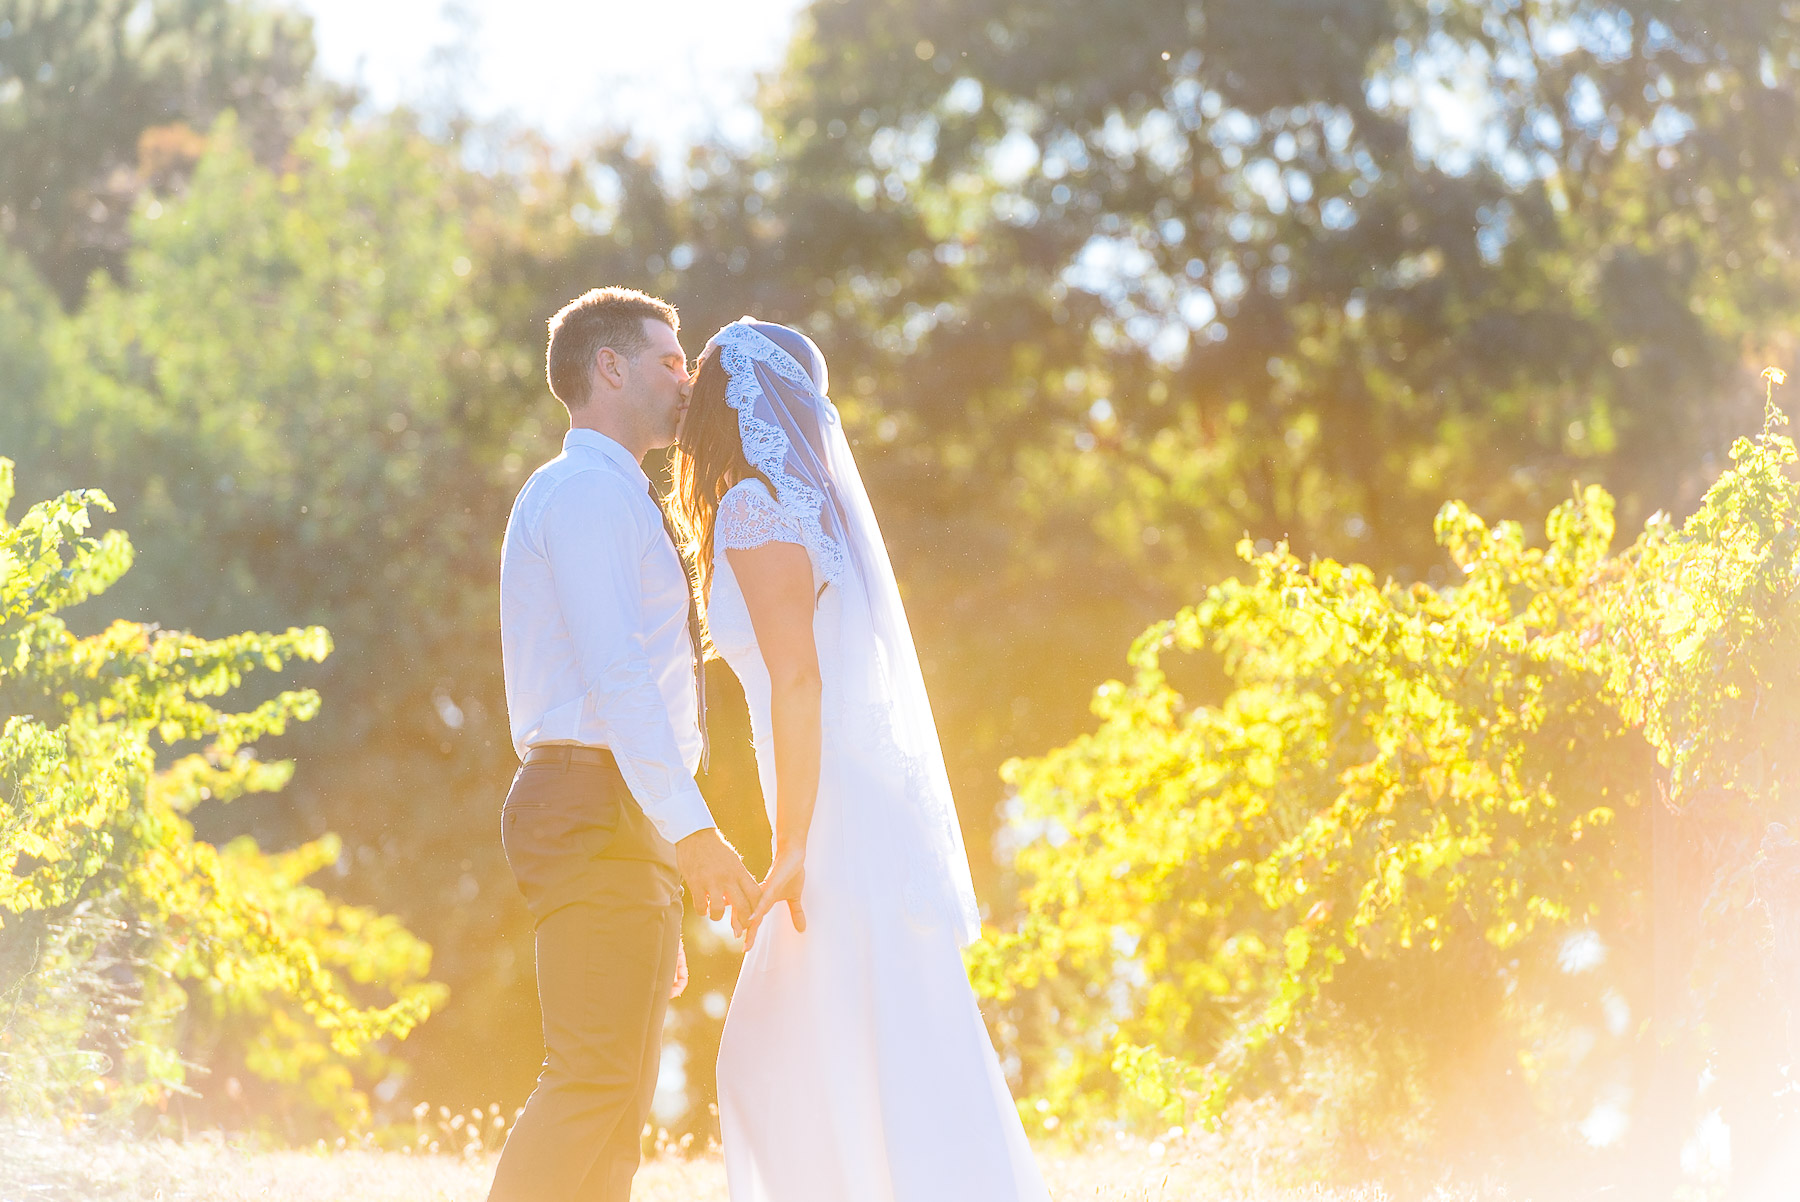 Justin_and_Jim_Best_Of_Wedding_Photography-73.jpg